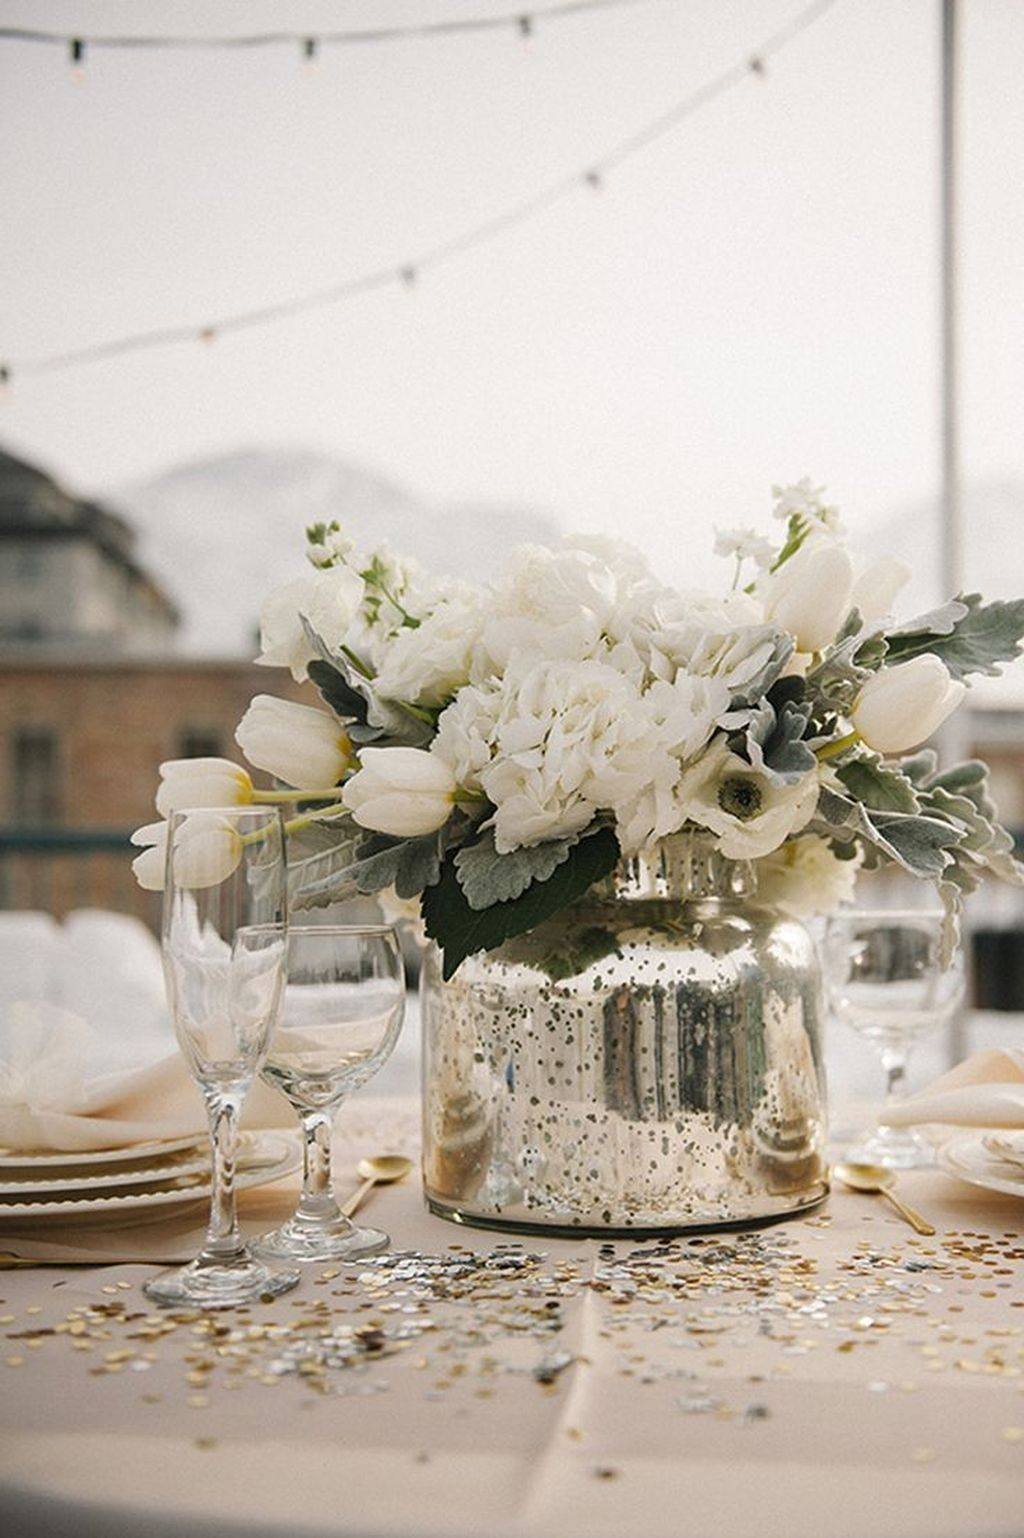 55 Totally Inspiring Winter Wedding Centerpieces Ideas | Winter ...